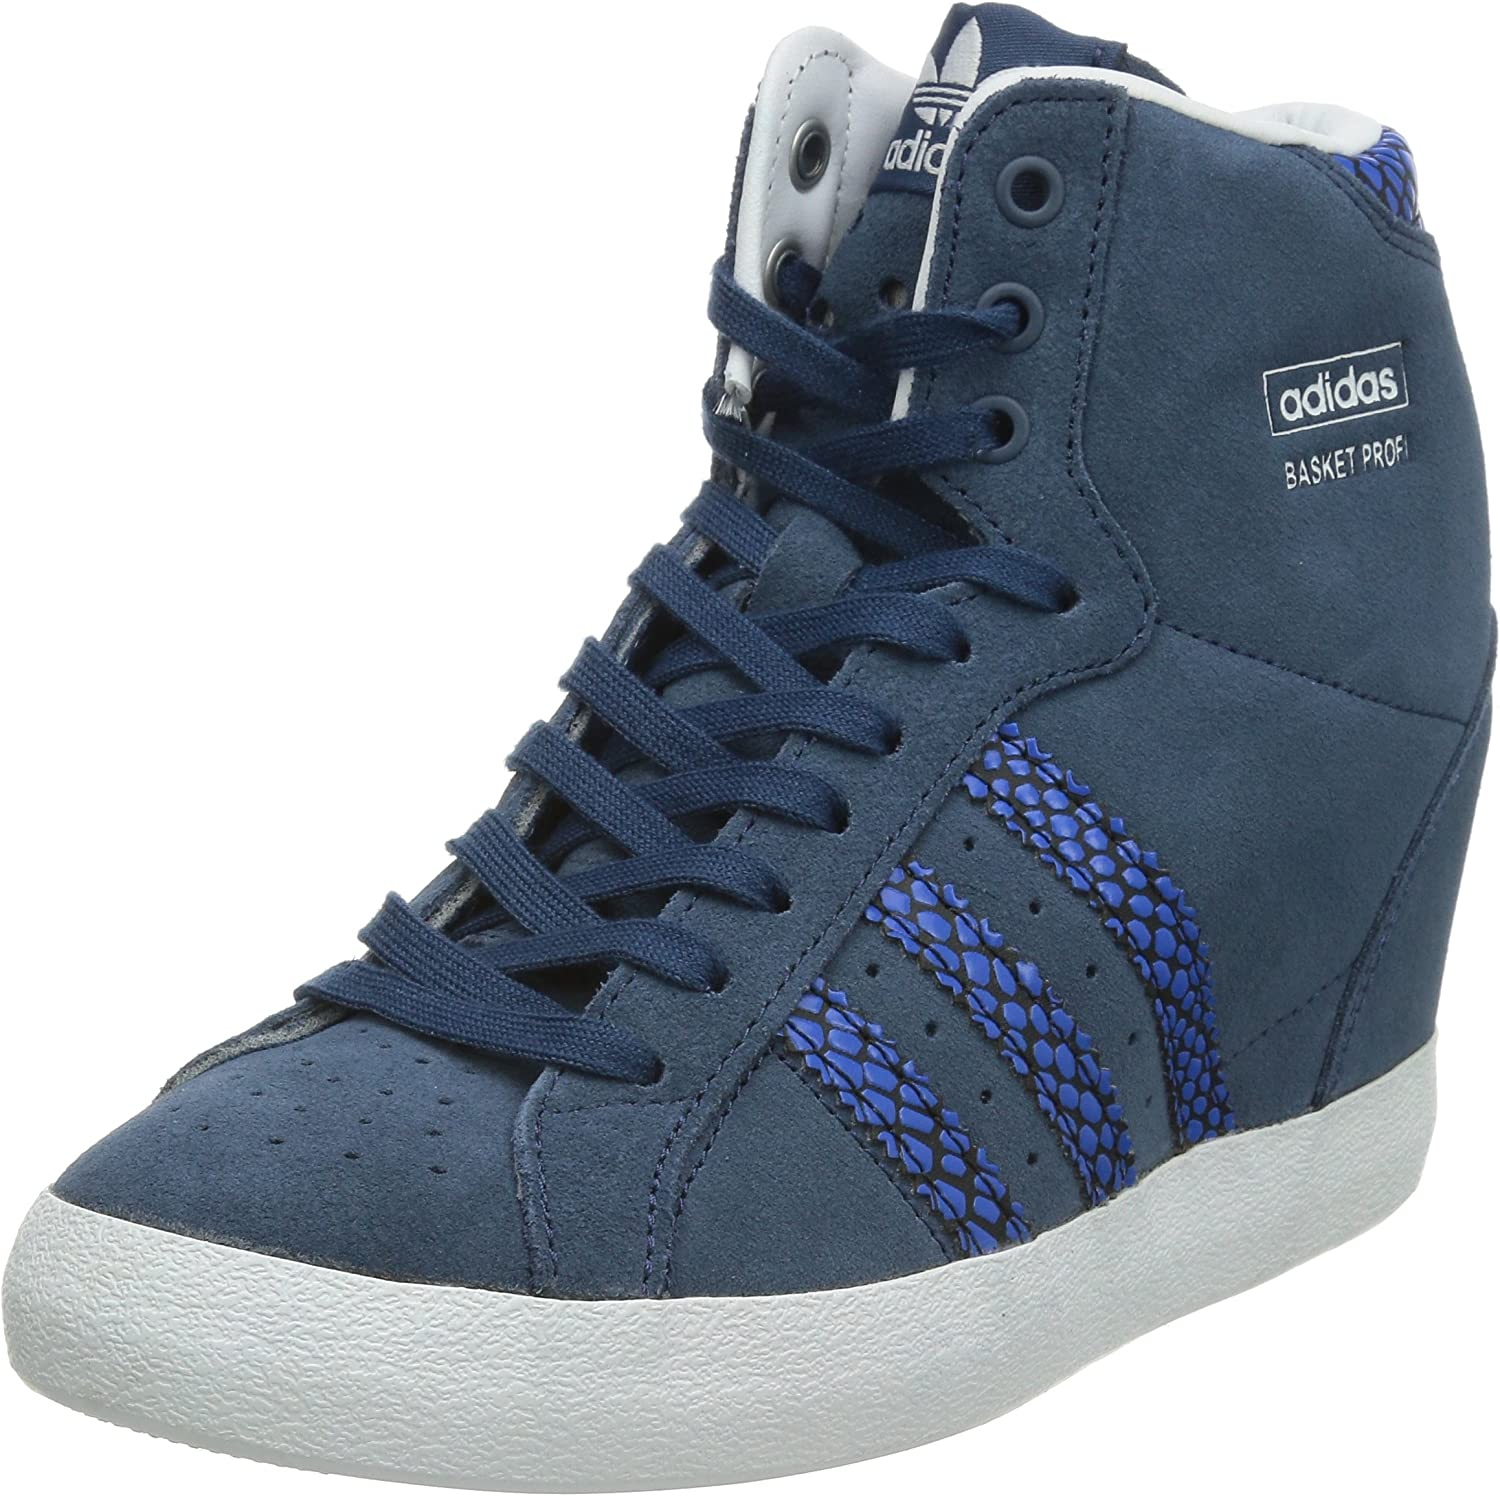 adidas Originals Adidas Basket Profi UP Chaussures Mode Sneakers Femme Cuir Suede Bleu